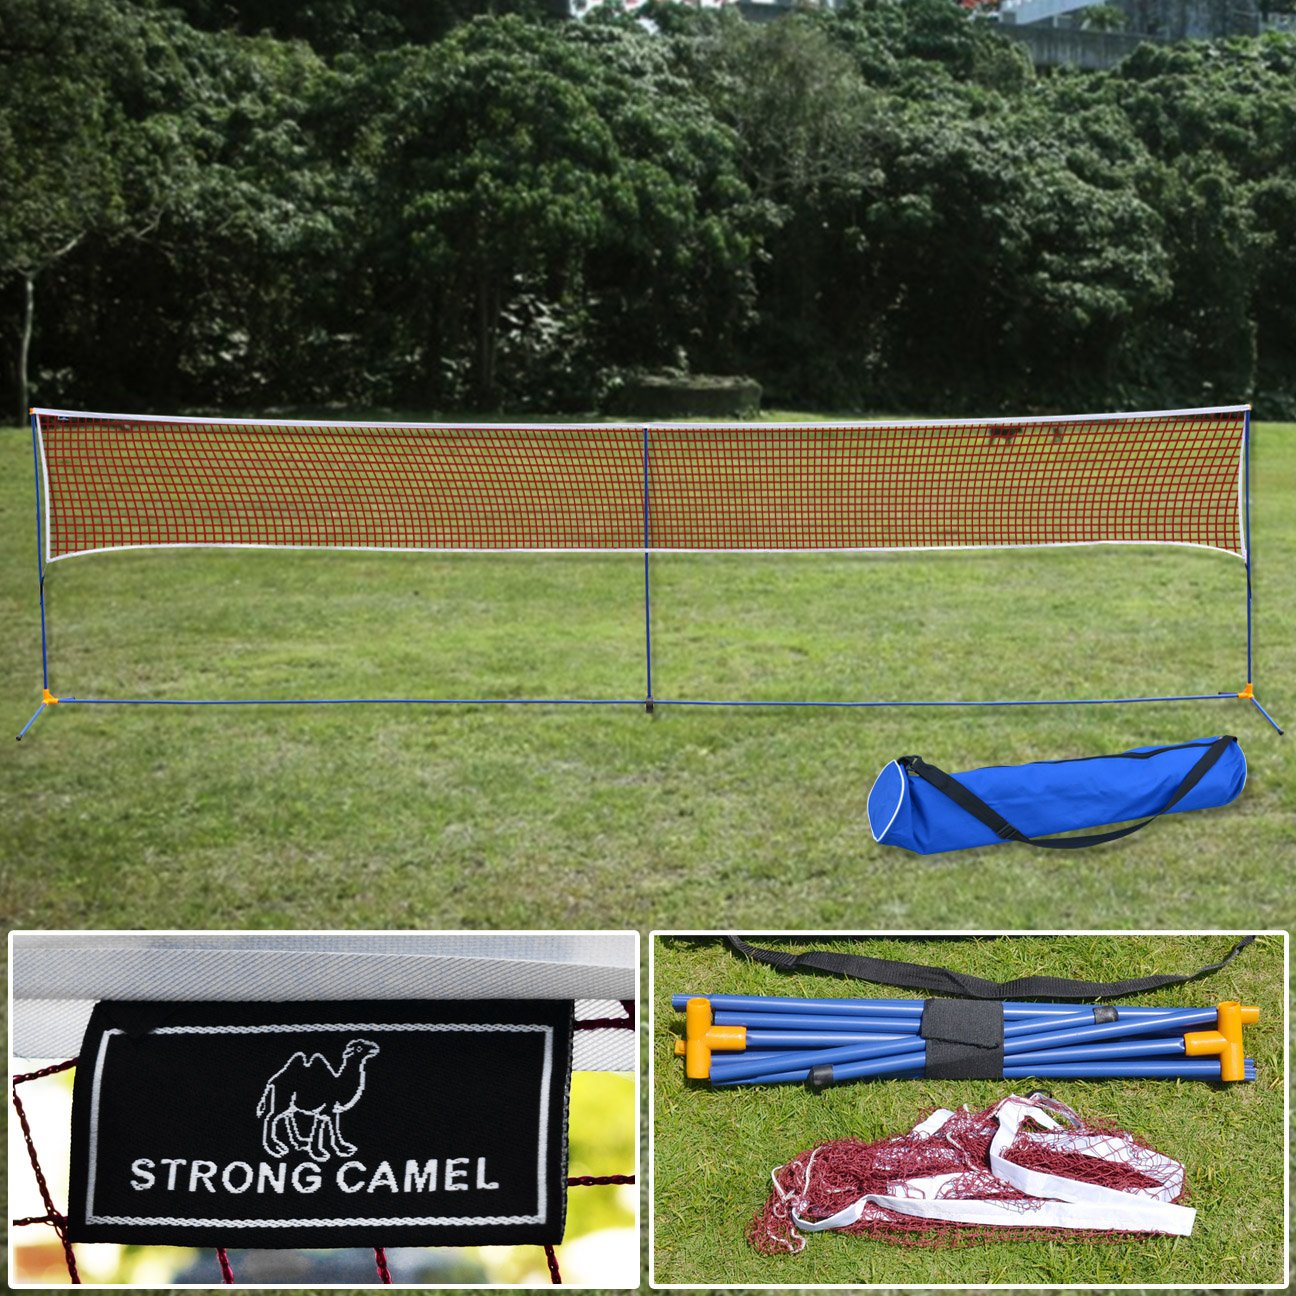 Strong Camel LARGE Volleyball Badminton Tennis Net Portable Training Beach with carrying bag STAND